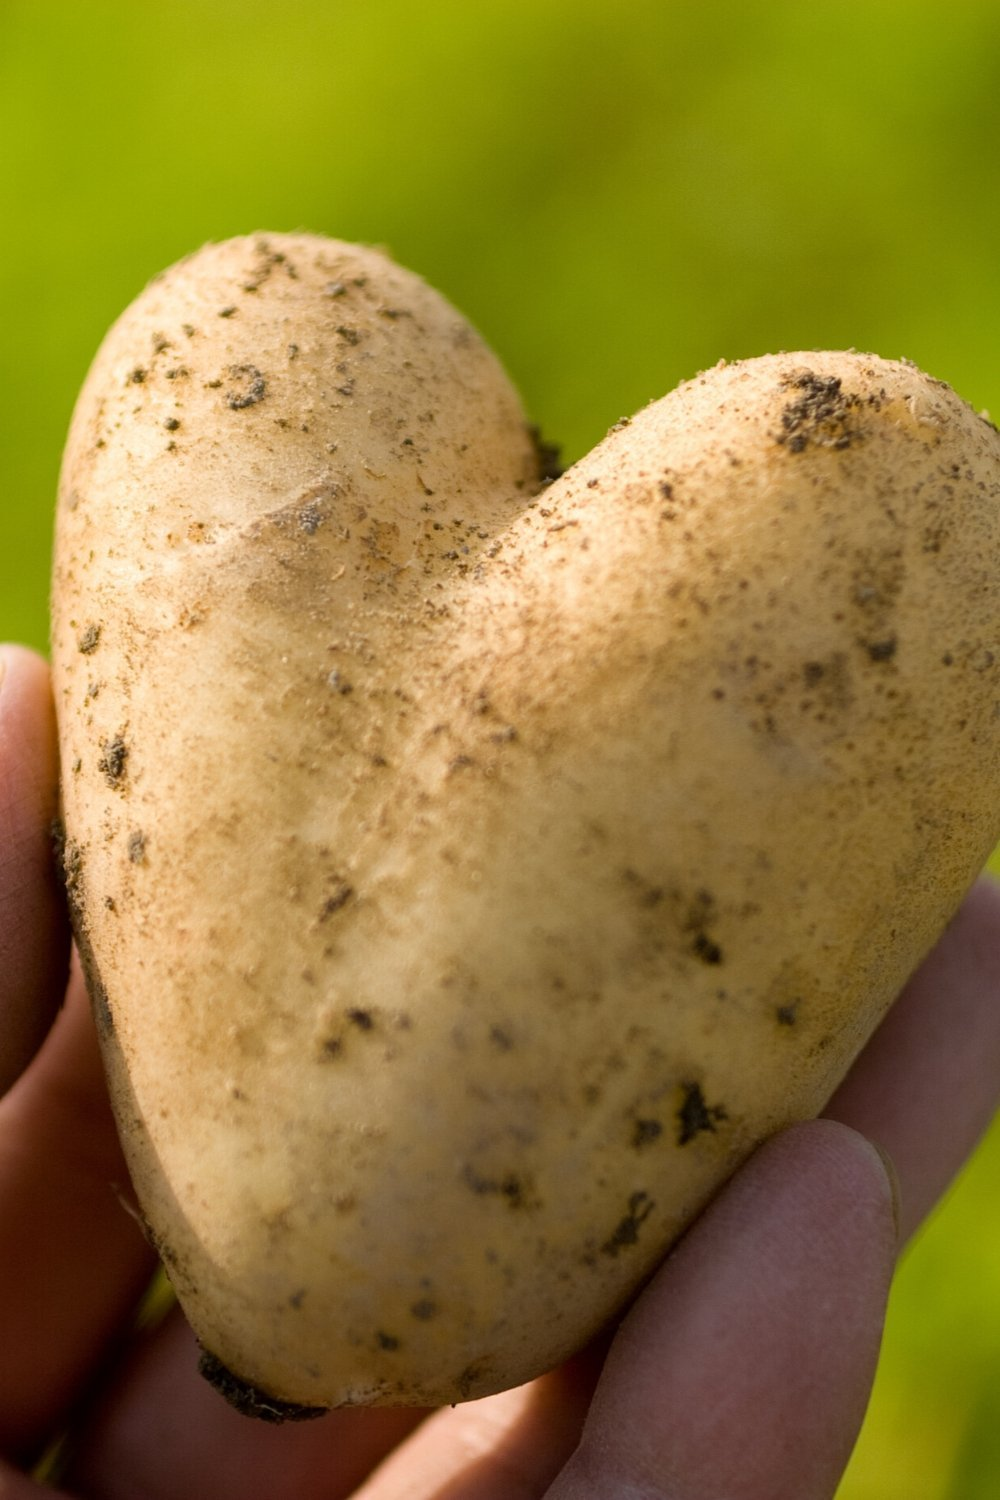 A heart-shaped potato